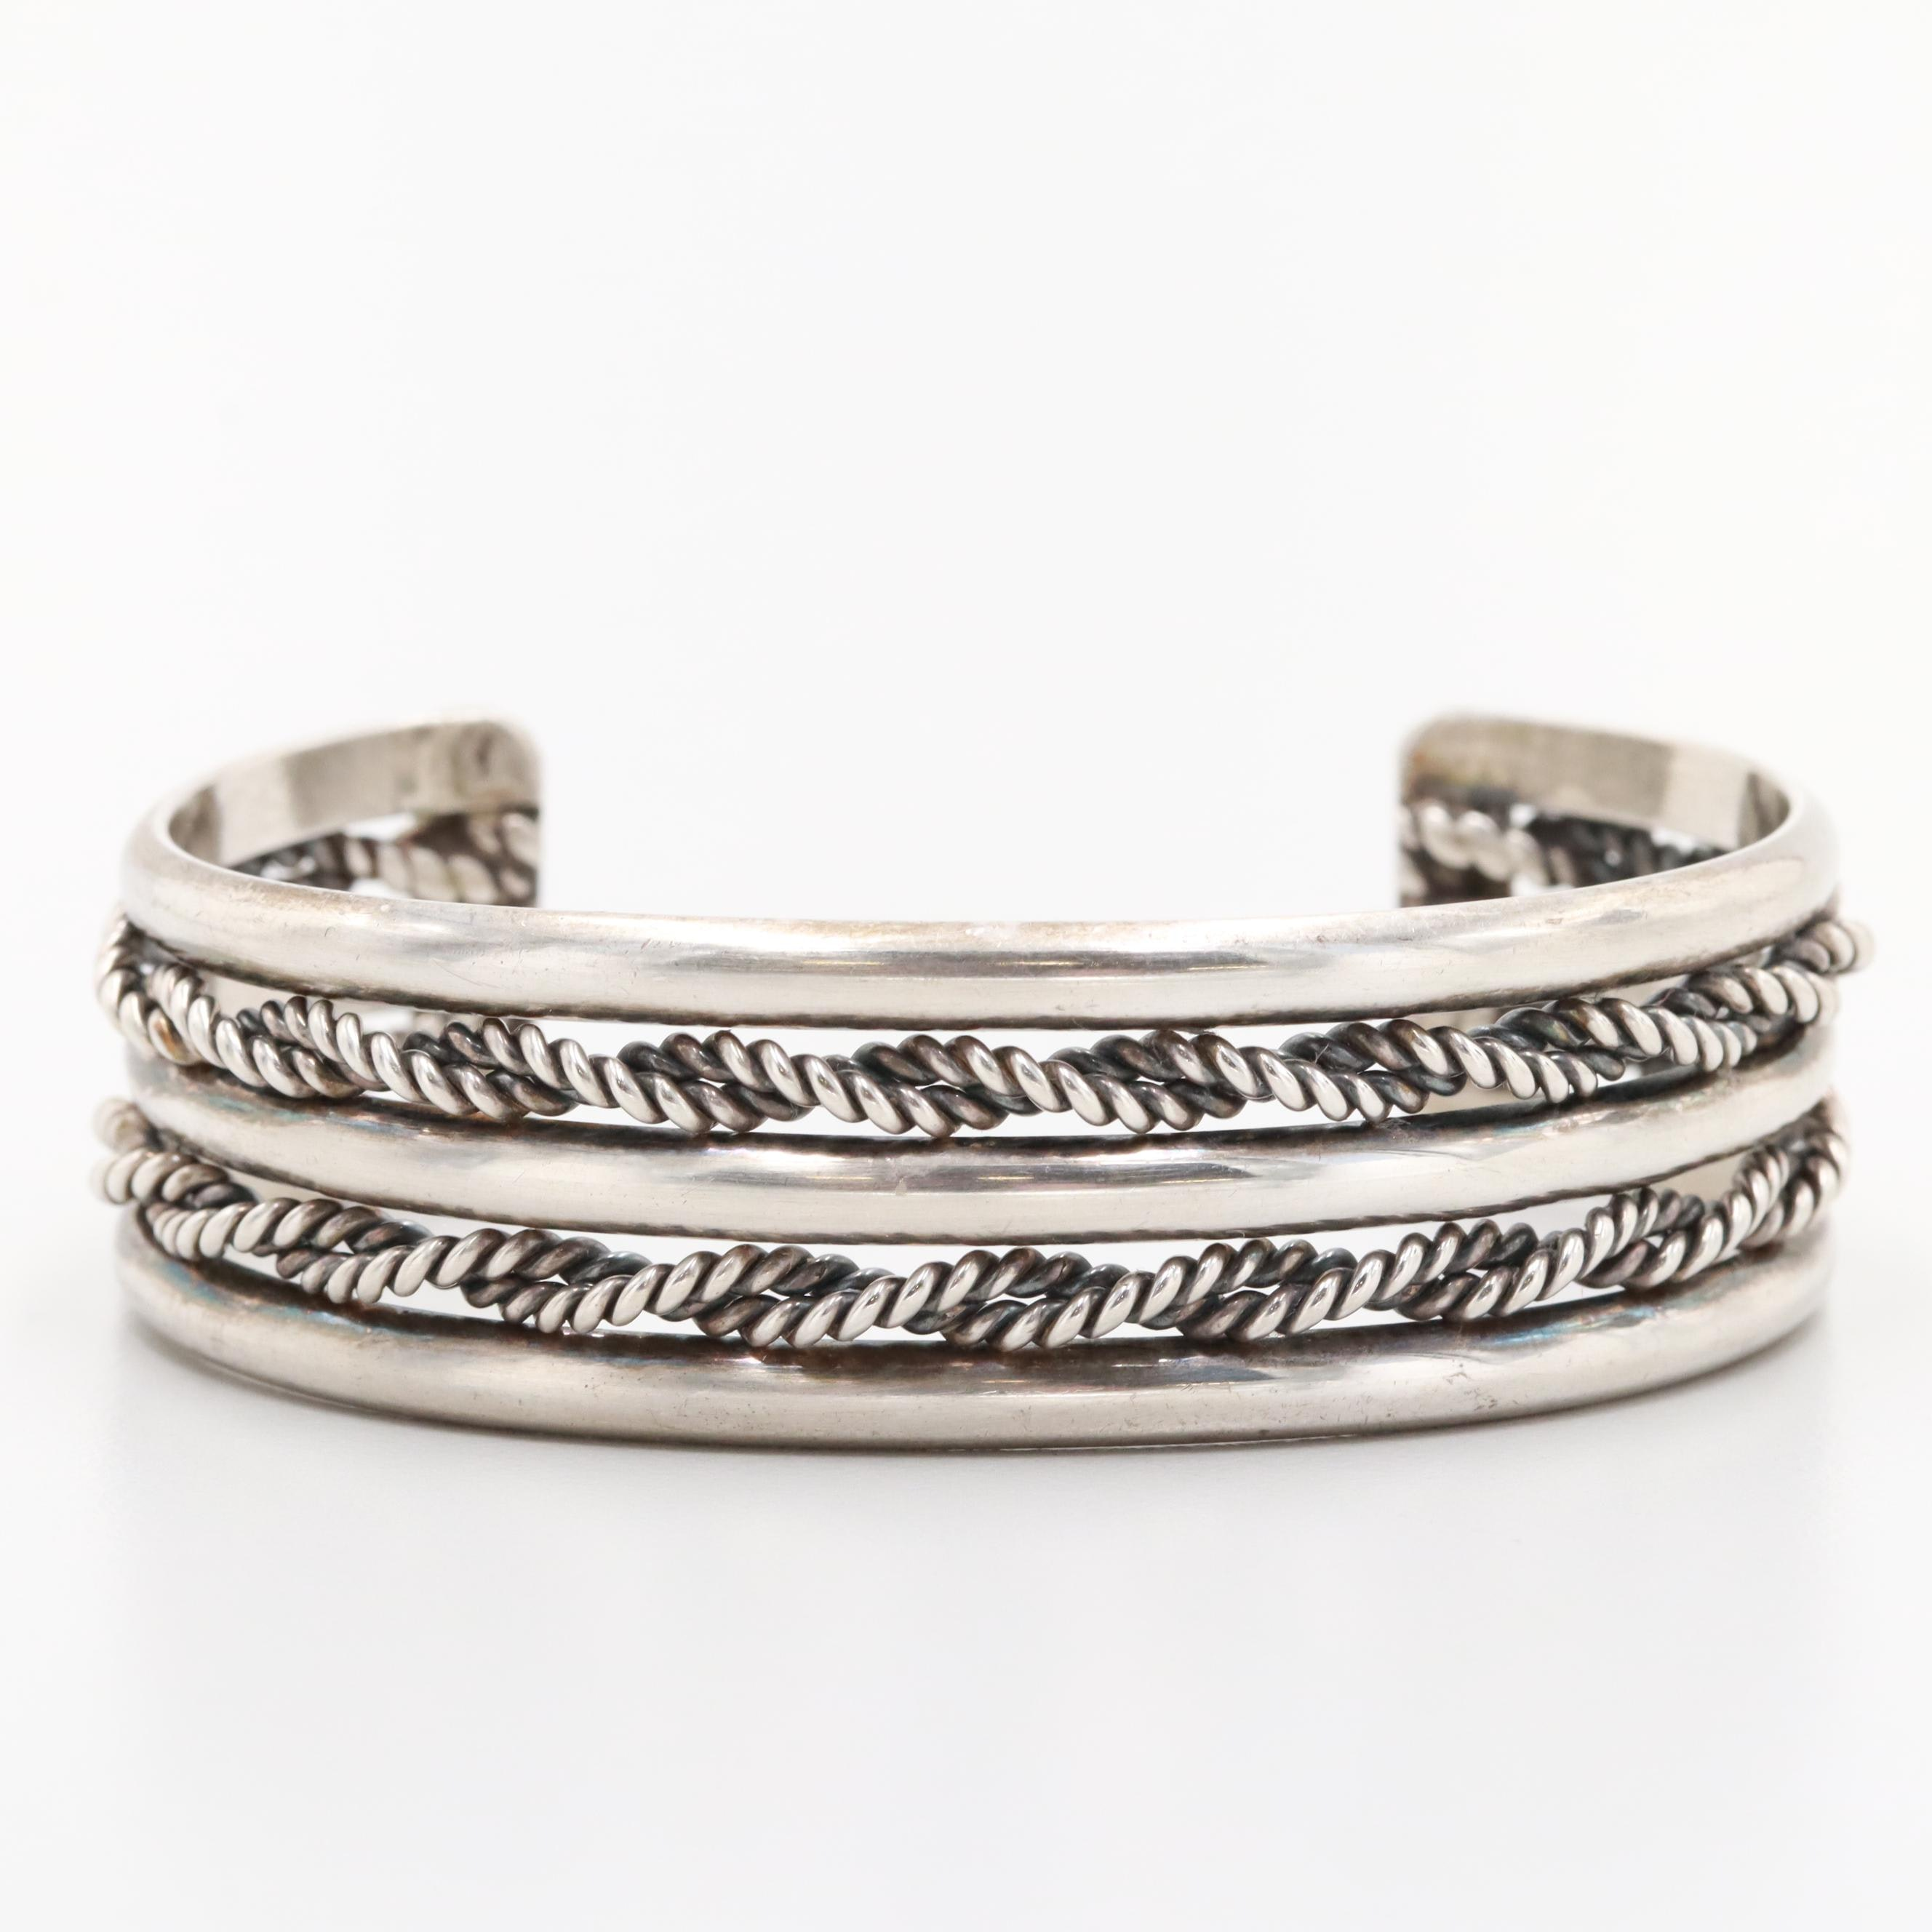 Sterling Silver Cuff Bracelet with Rope Accents